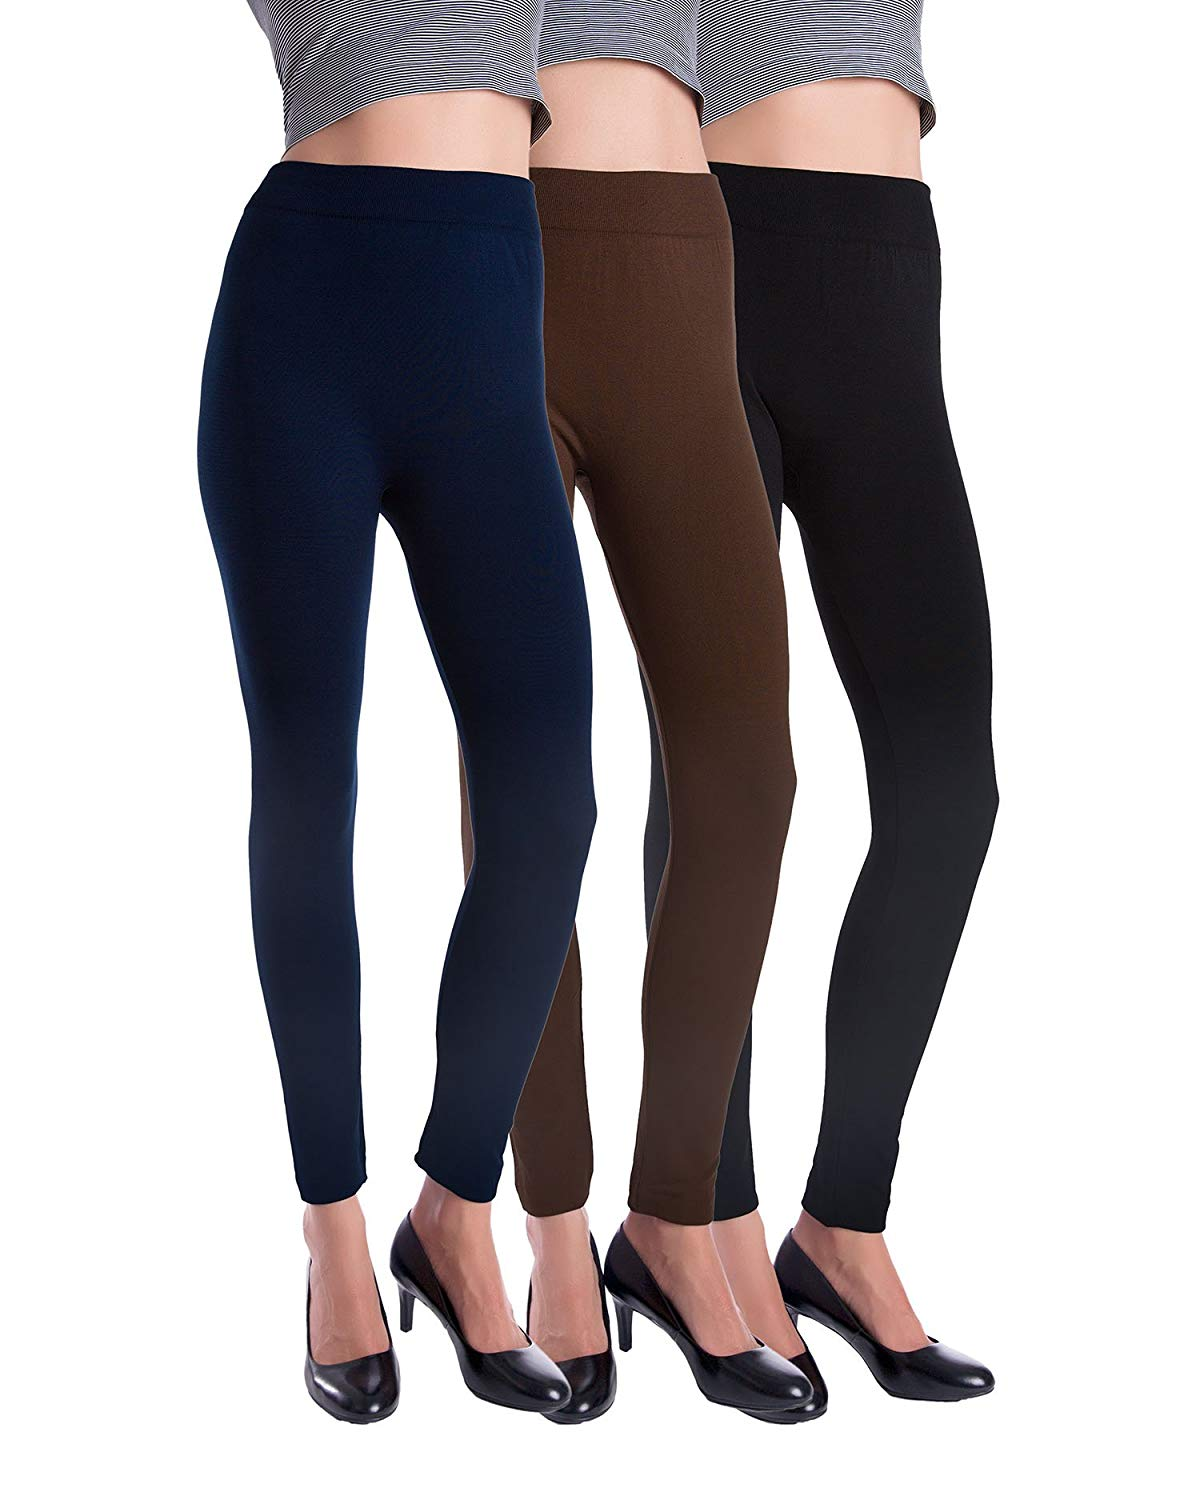 938caa6d8fee86 Get Quotations · Homma 3 Pack Warm Fleece Lined Thick Brushed Leggings  Thights